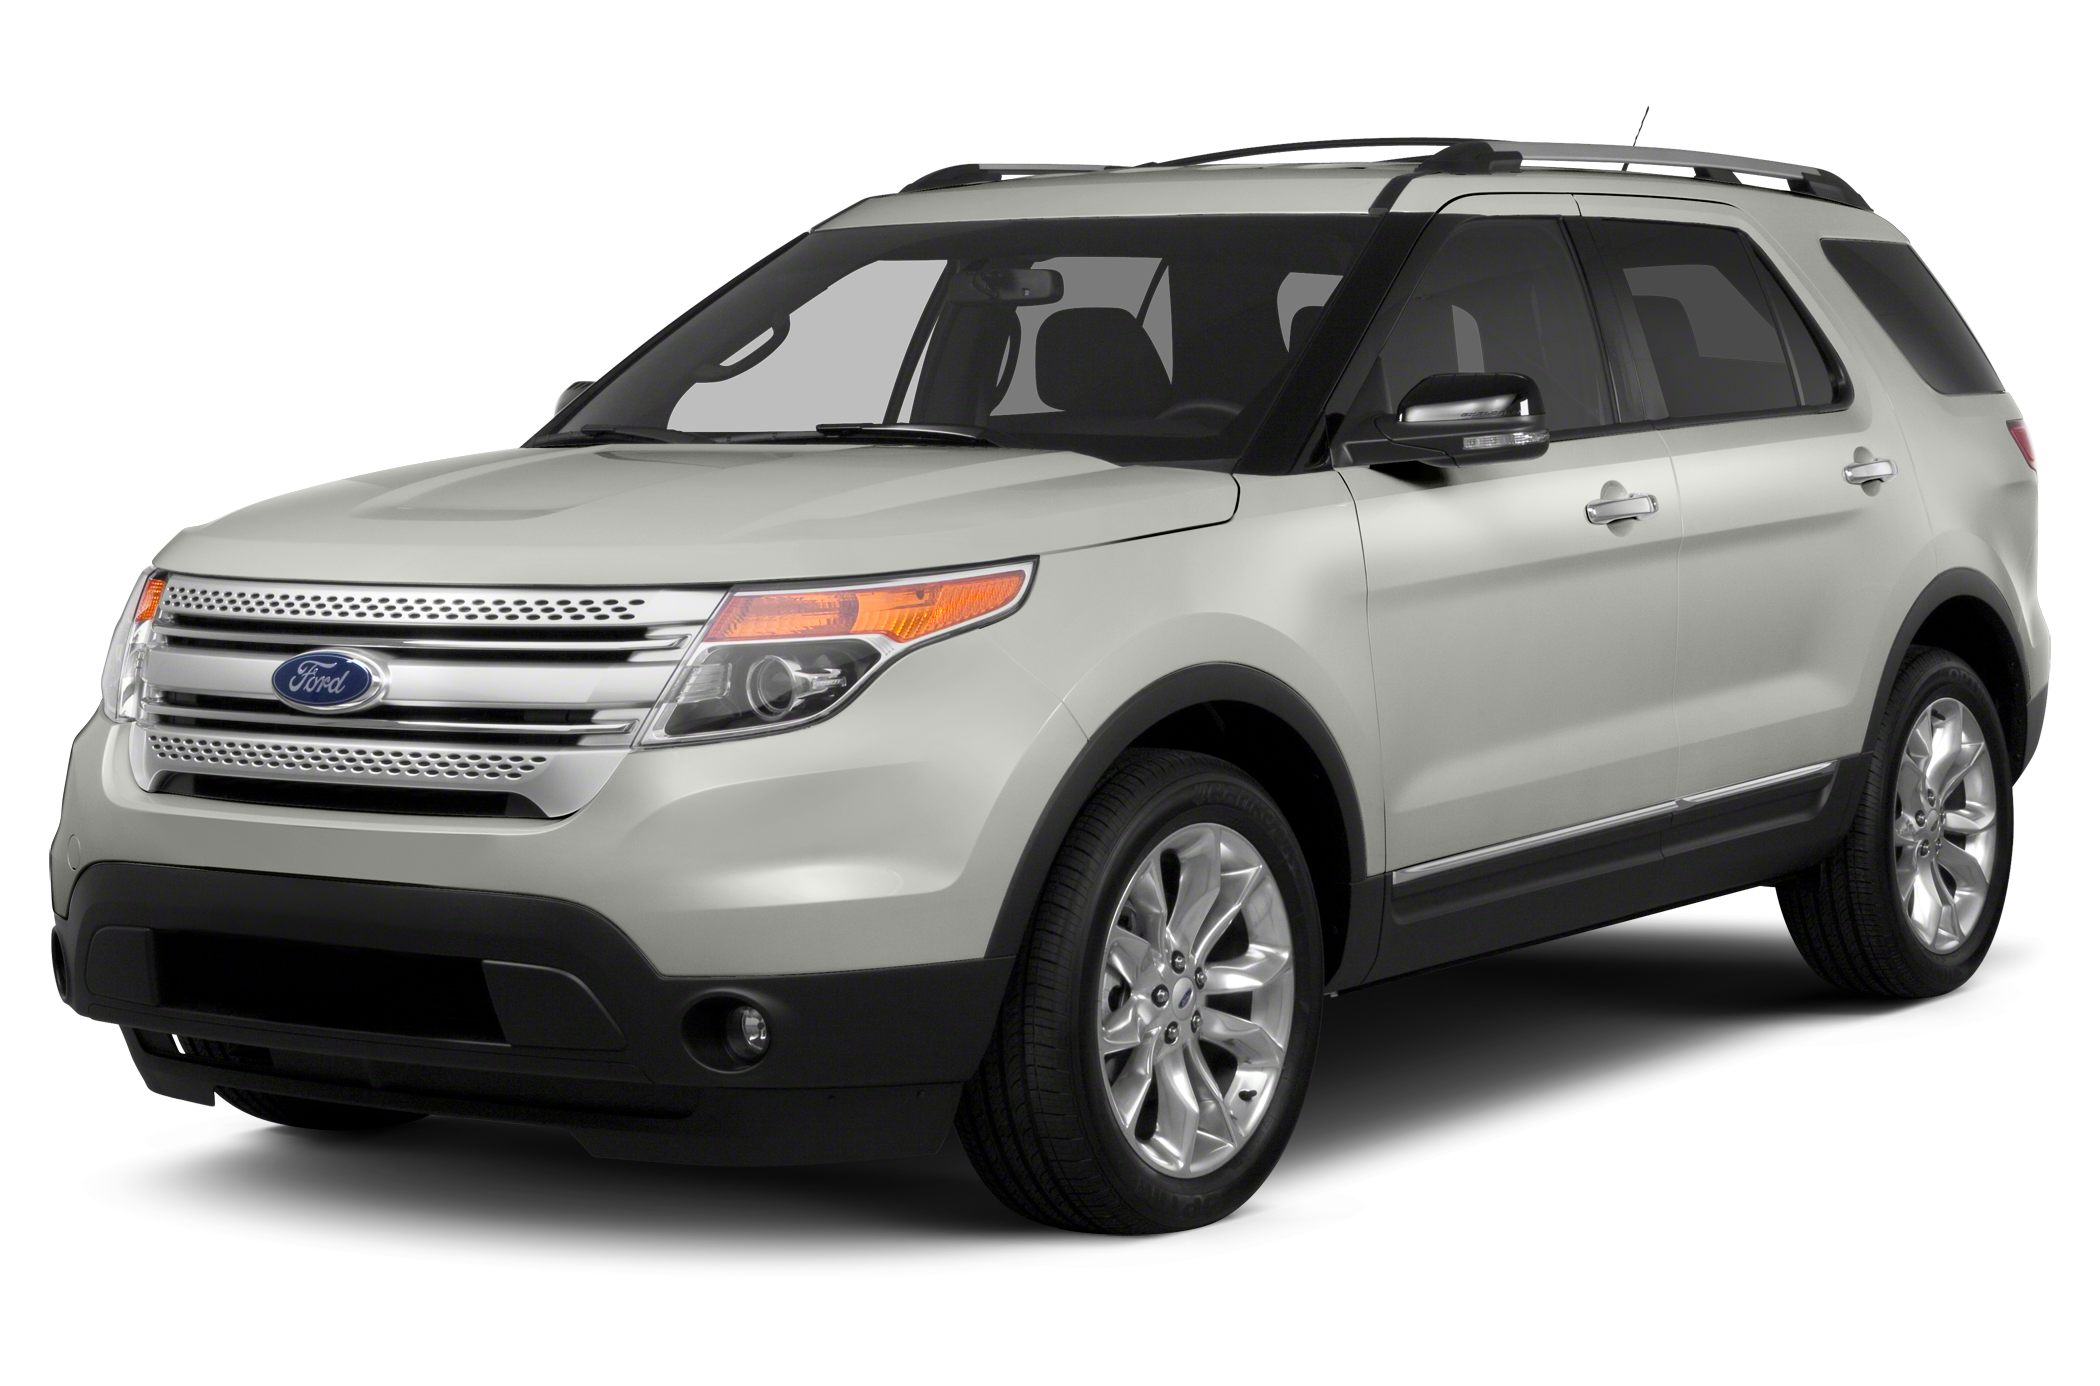 2014 ford explorer information